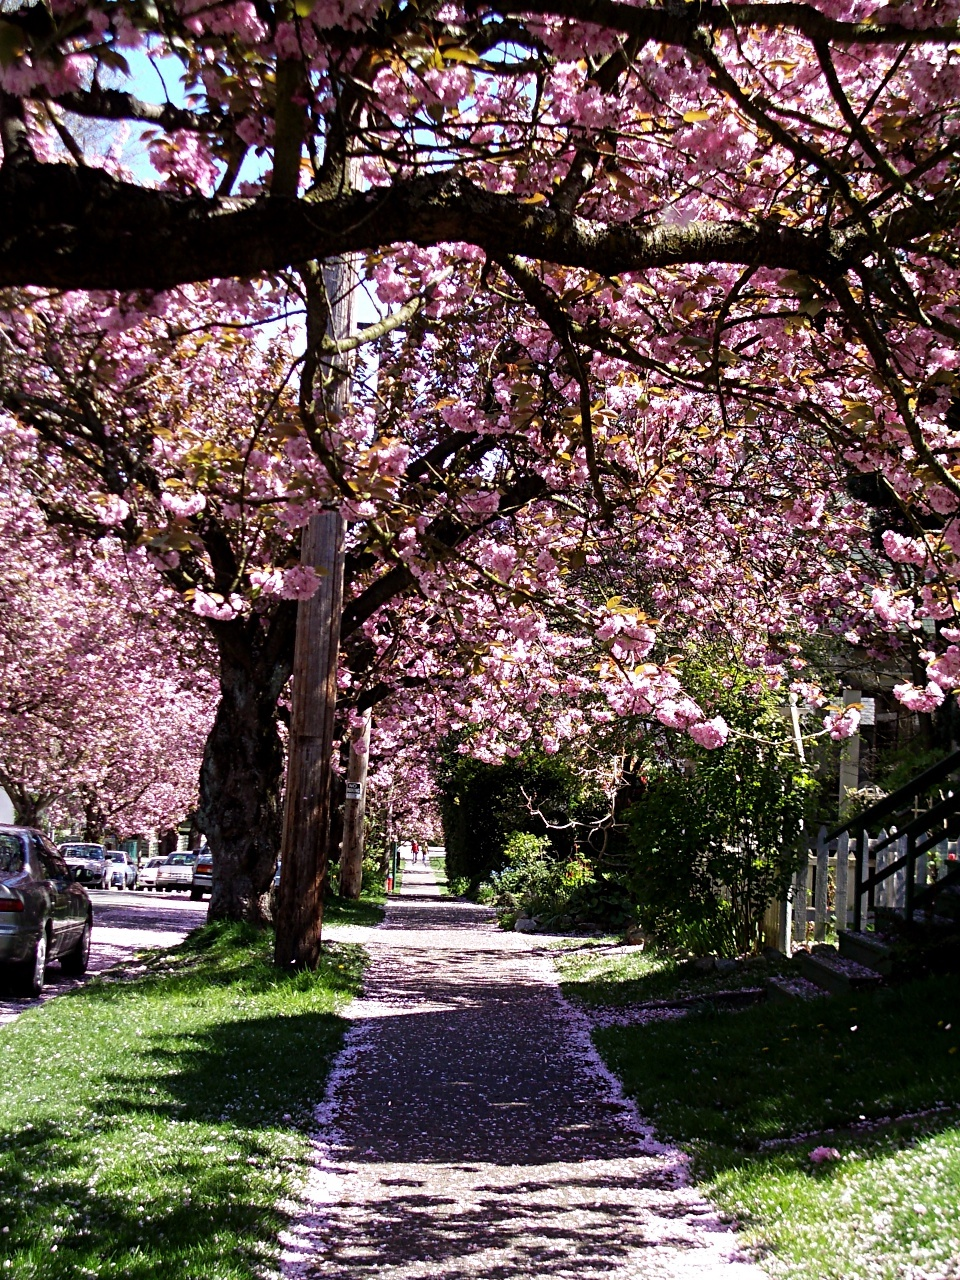 From Cherry Blossoms To Tall Sequoias Vancouver S Trees Hold History In Their Branches Laptrinhx News